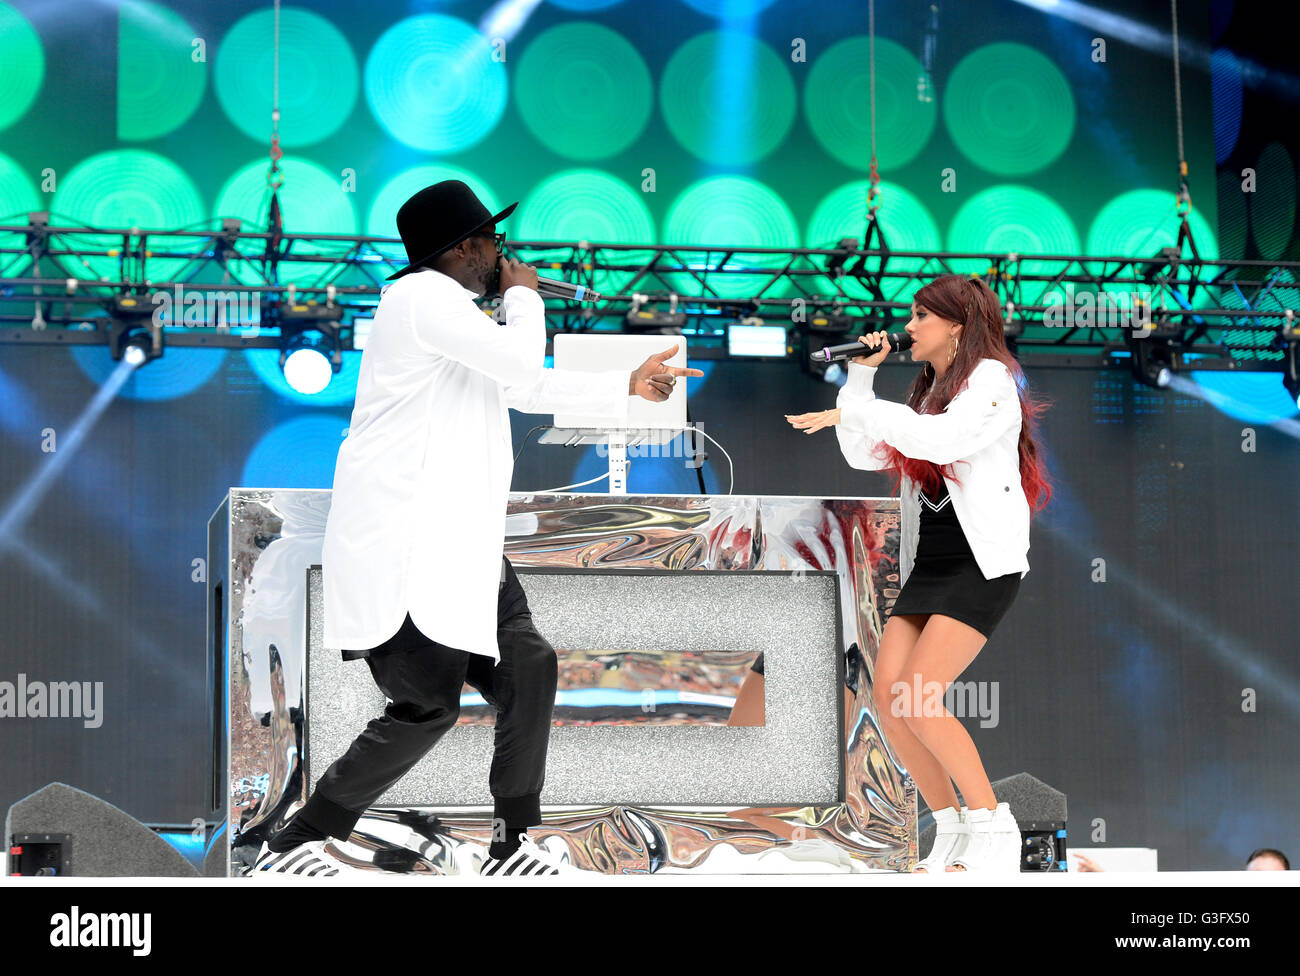 Will.I.am and Lydia Lucy performing at Capital FM's Summertime Ball with Vodafone held at Wembley Stadium, London. - Stock Image